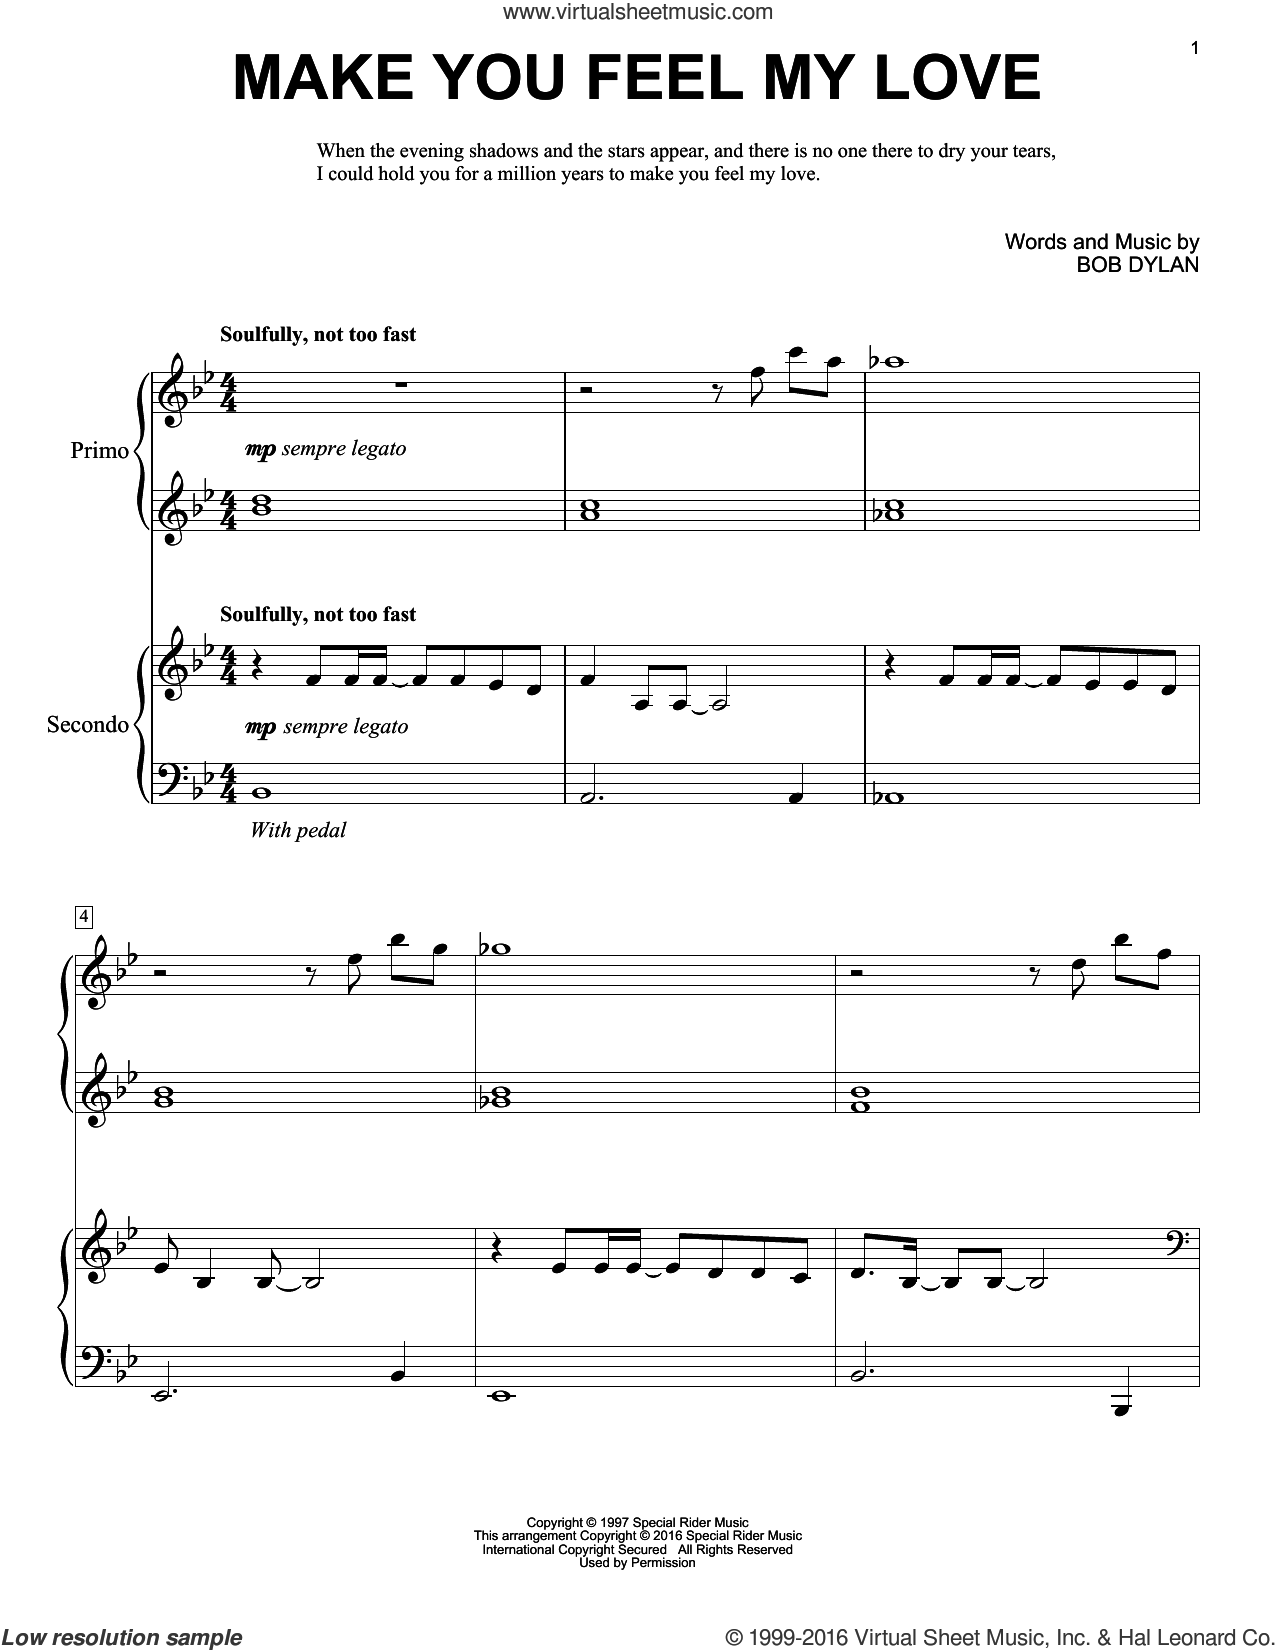 Make You Feel My Love sheet music for piano four hands by Adele, Eric Baumgartner and Bob Dylan, intermediate skill level